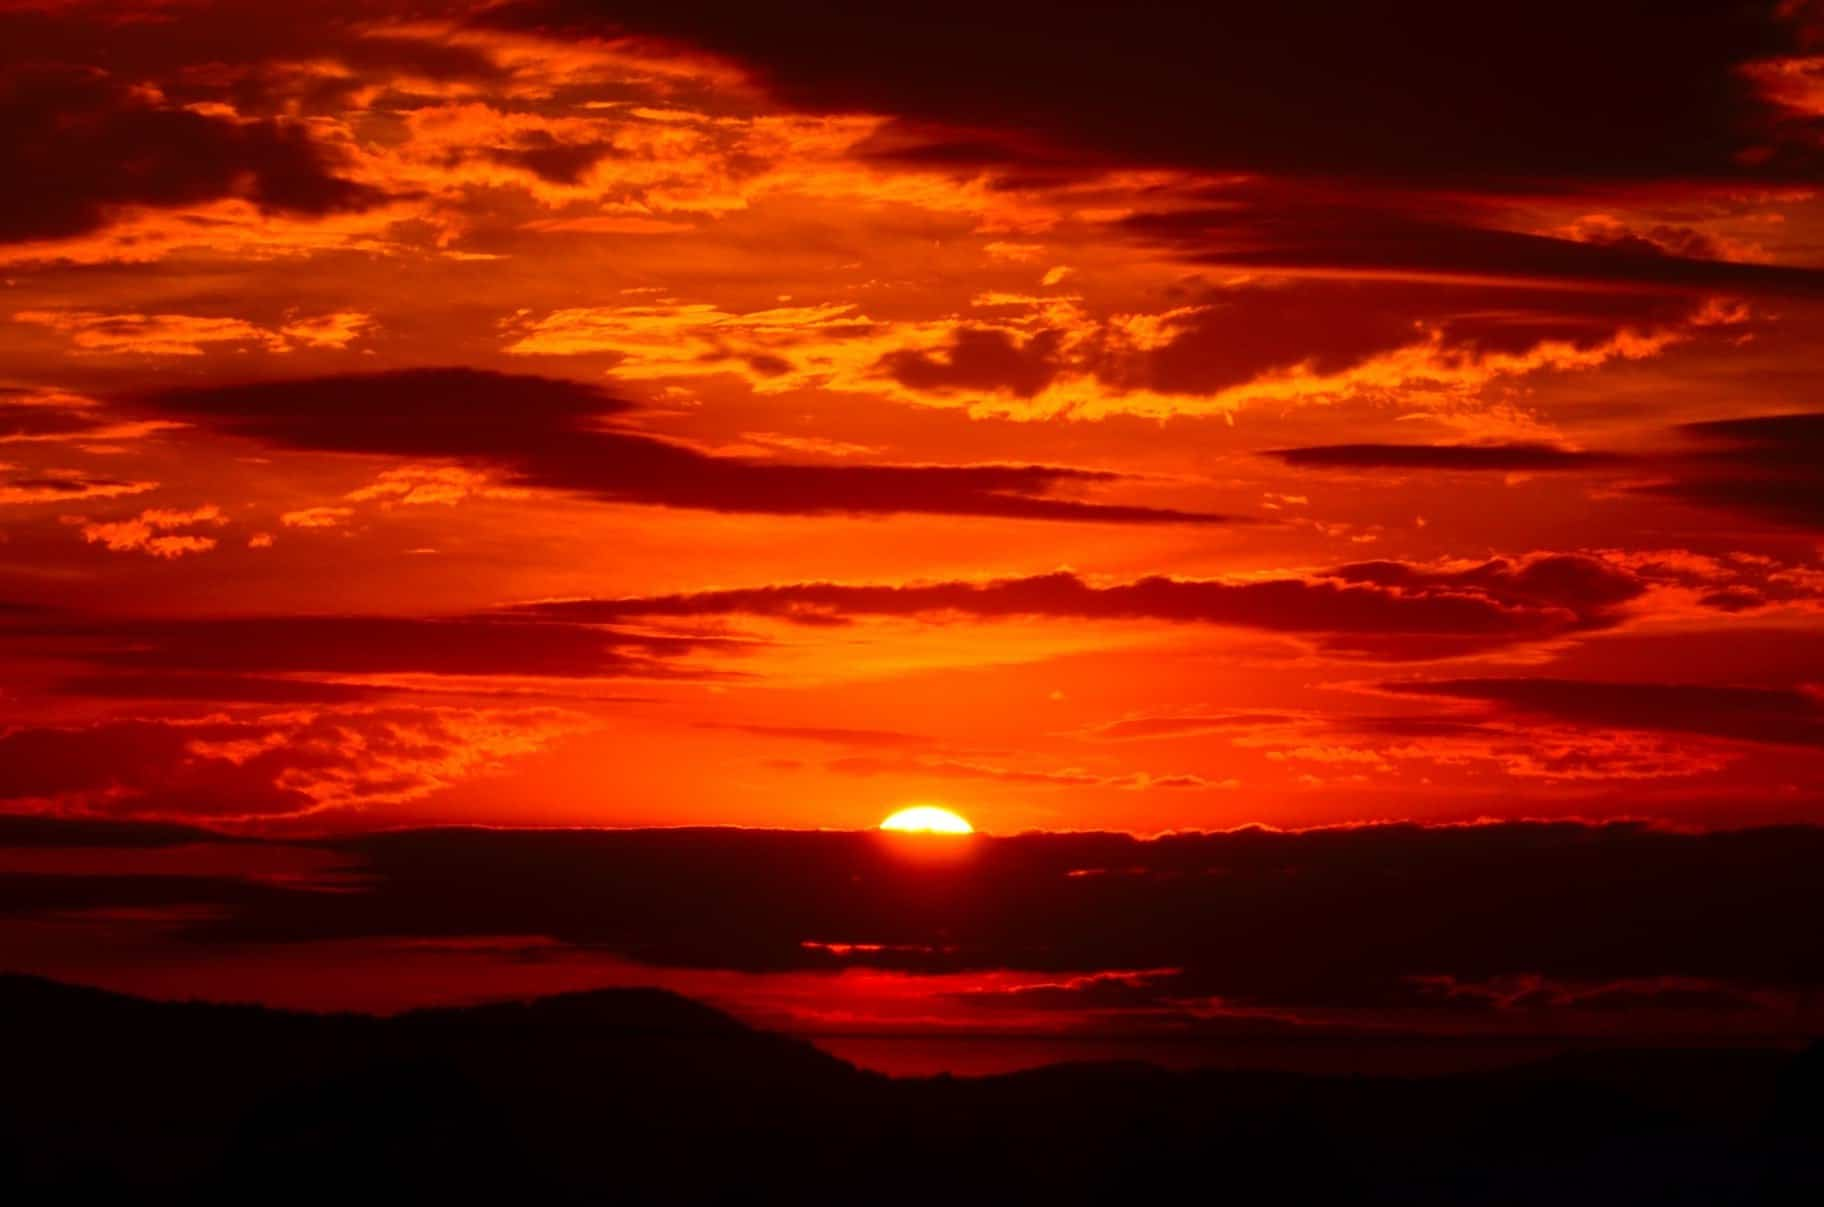 Free picture sunrise shadow darkness dark red dawn